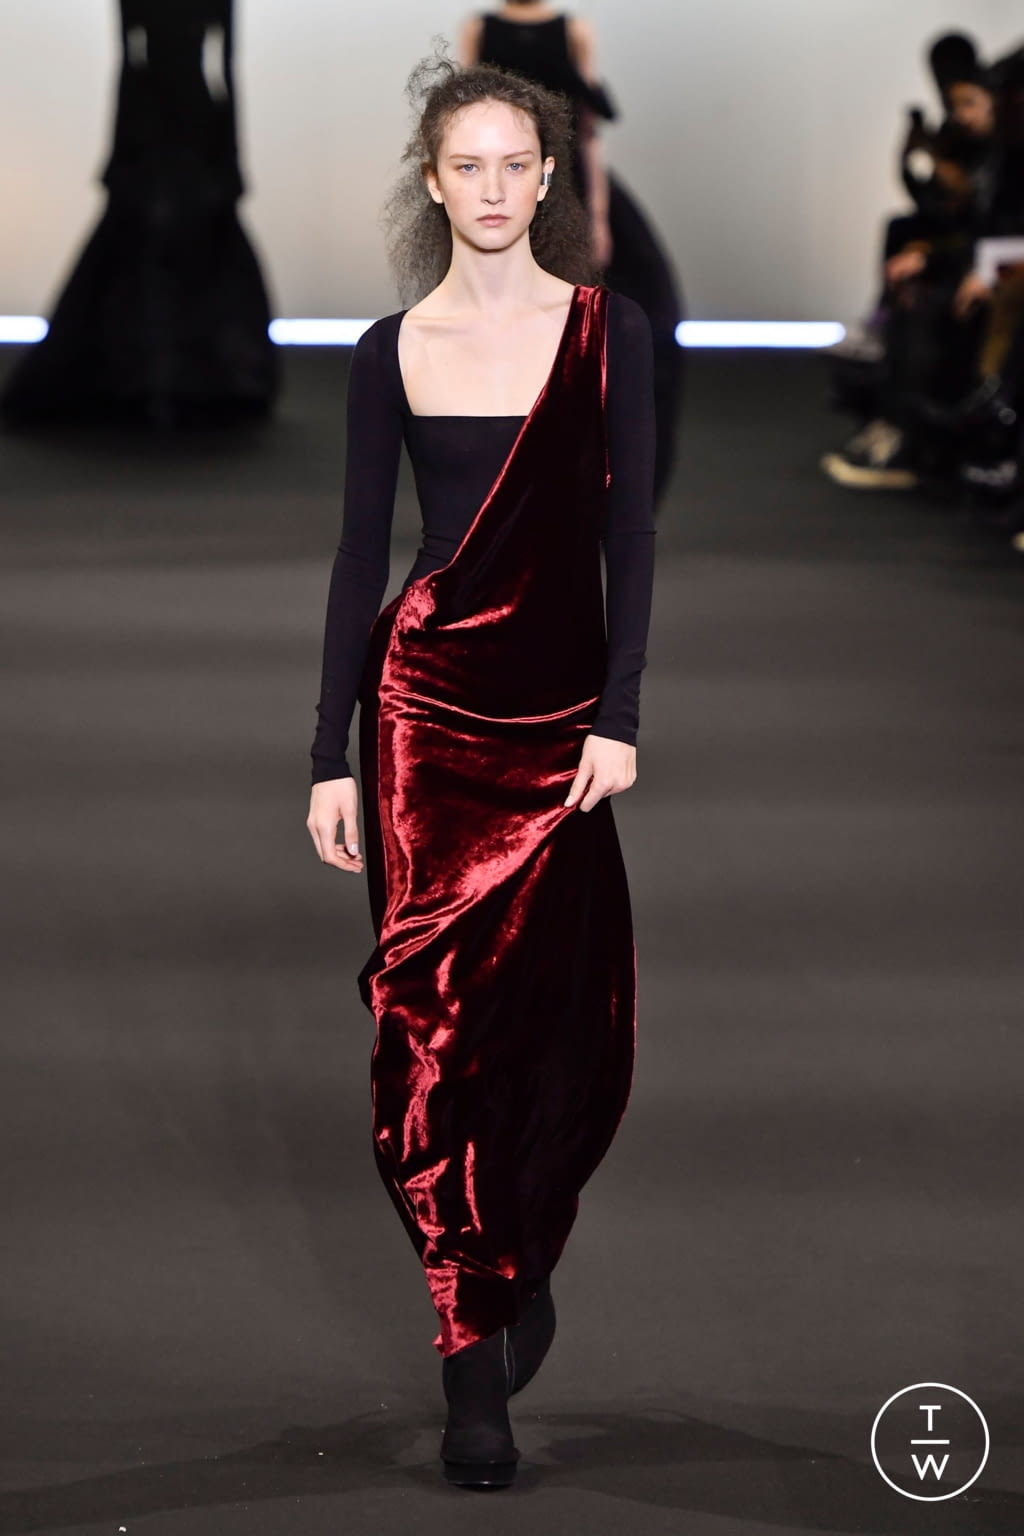 Fashion Week Paris Fall/Winter 2020 look 34 de la collection Ann Demeulemeester womenswear